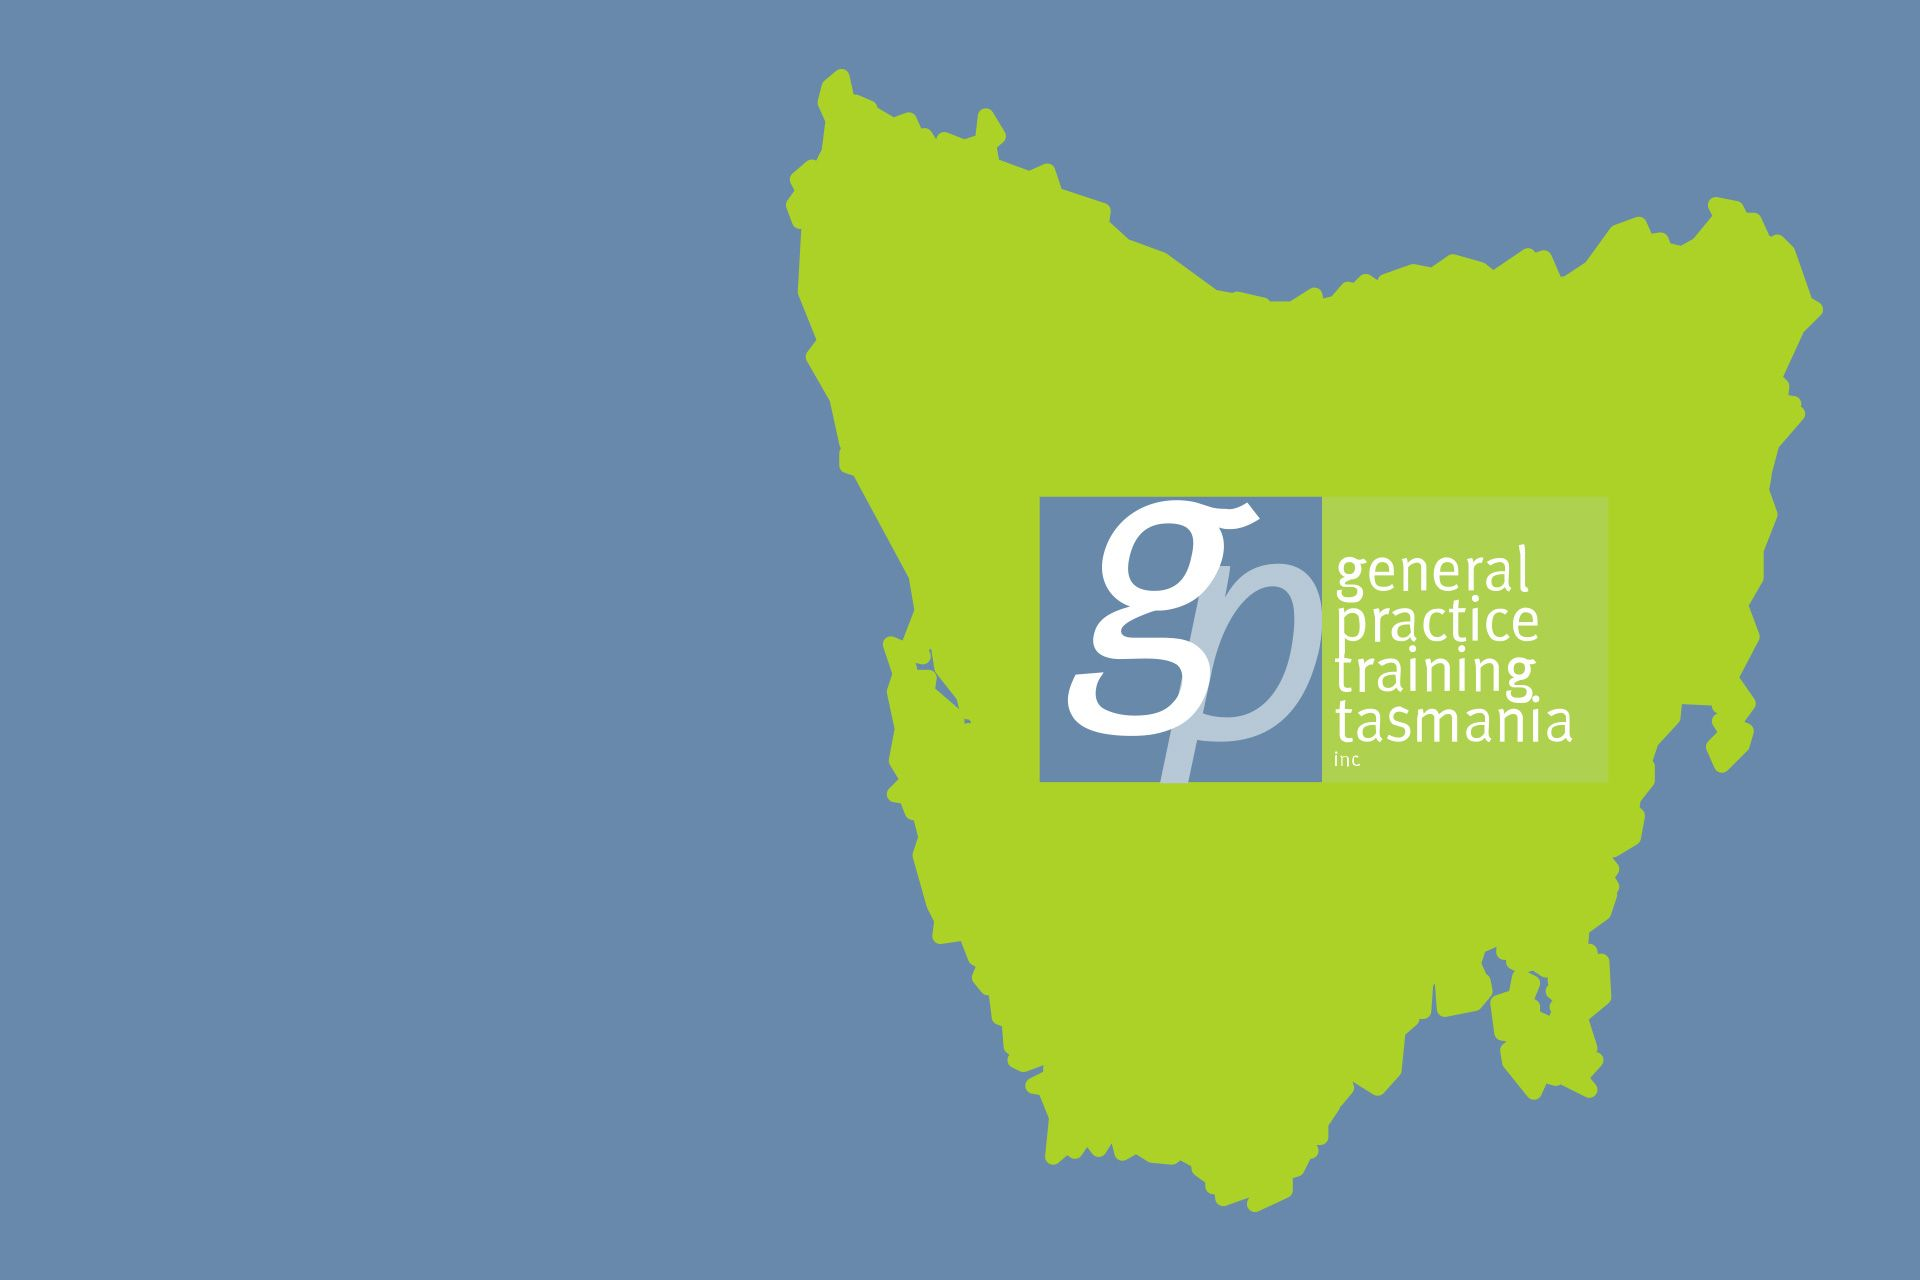 General Practice Training Tasmania